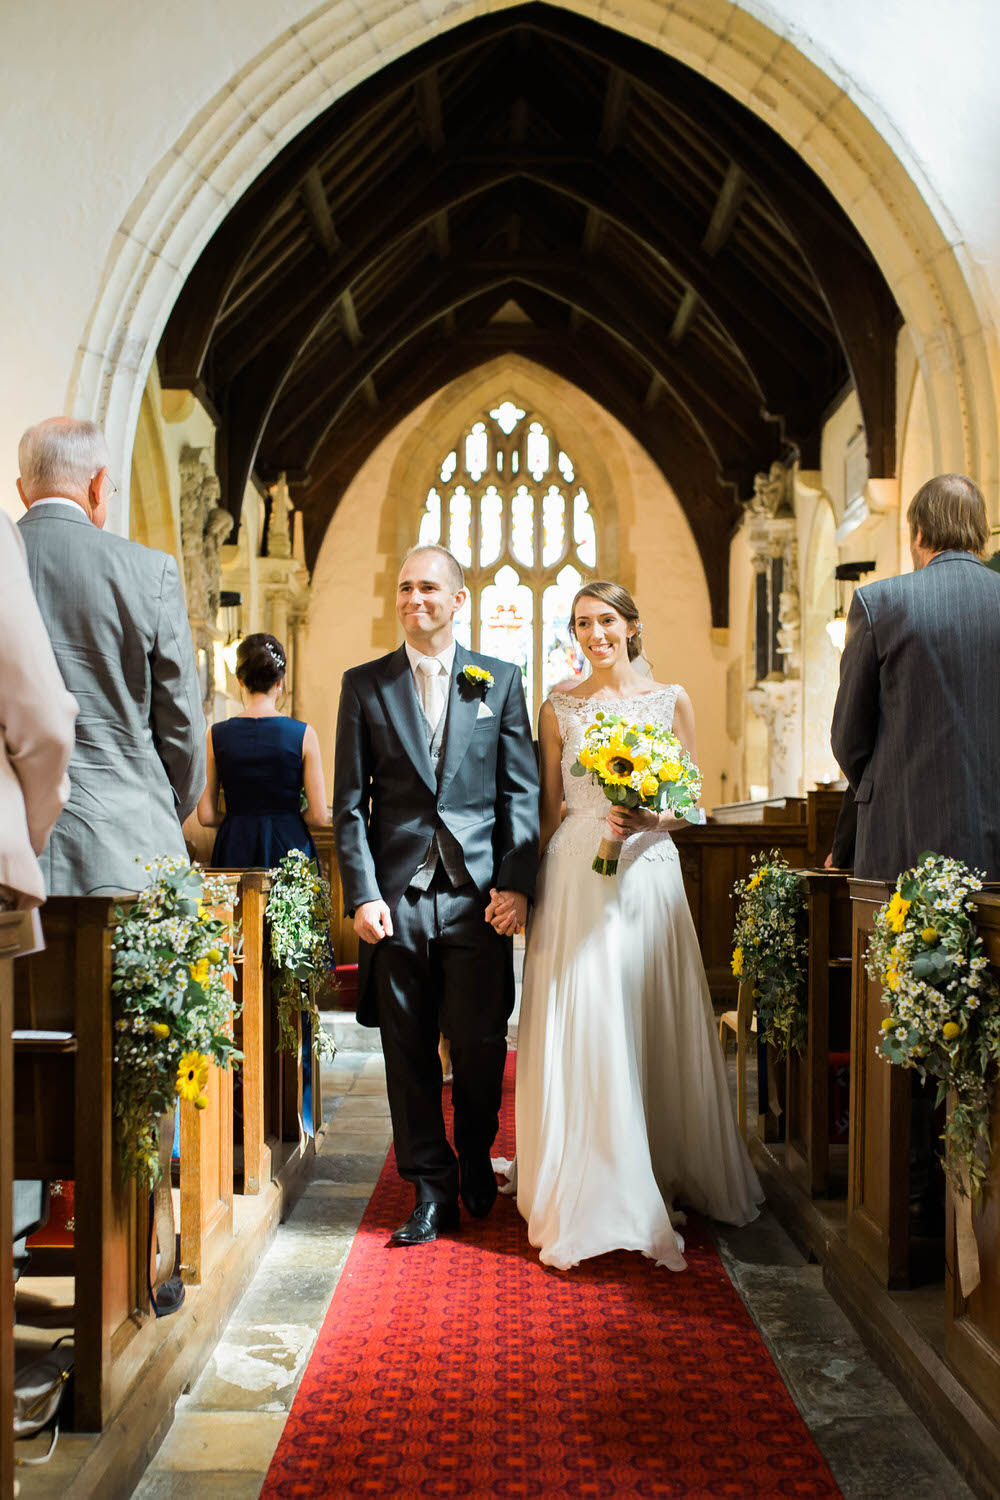 A-bride-and-groom-walk-down-the-aisle-at-a-wedding-in-Dumbleton.jpg